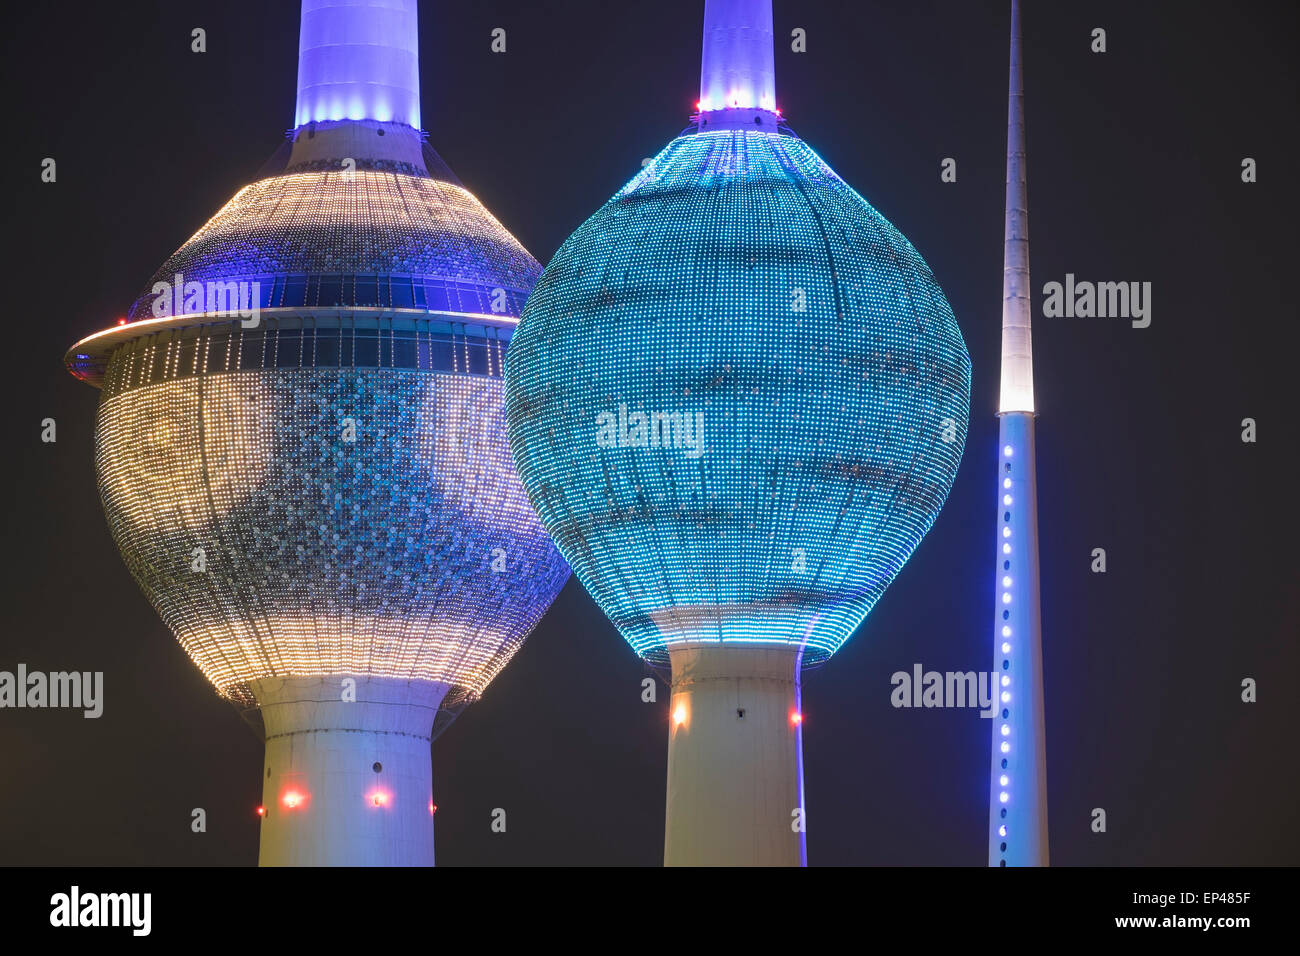 Kuwait Towers illuminated at night in Kuwait City, Kuwait. - Stock Image